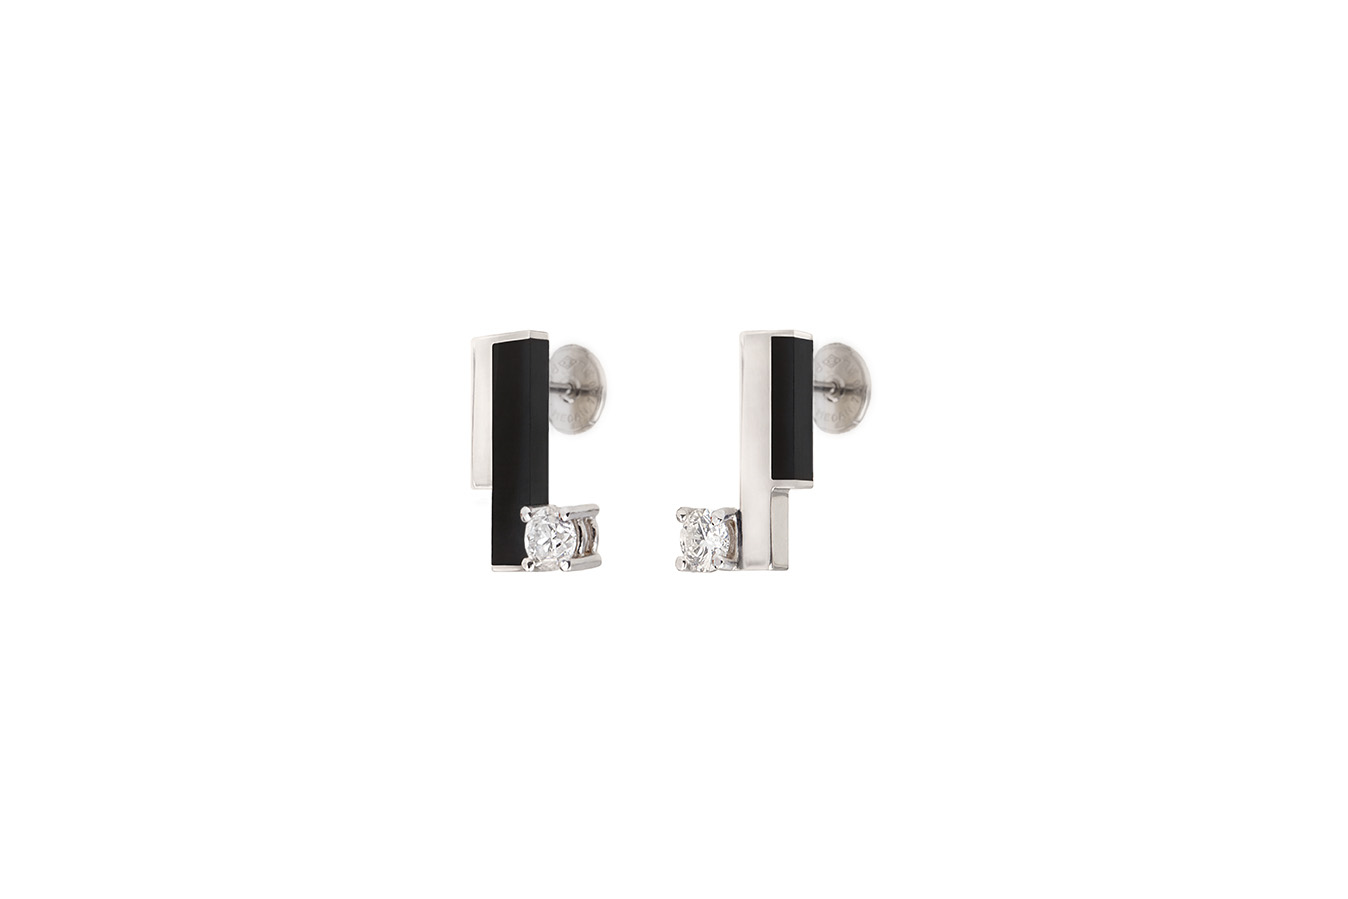 COMPOSITION EARRINGS WHITE GOLD 18K ONYX TOTAL 0.40 CT DIAMONDS